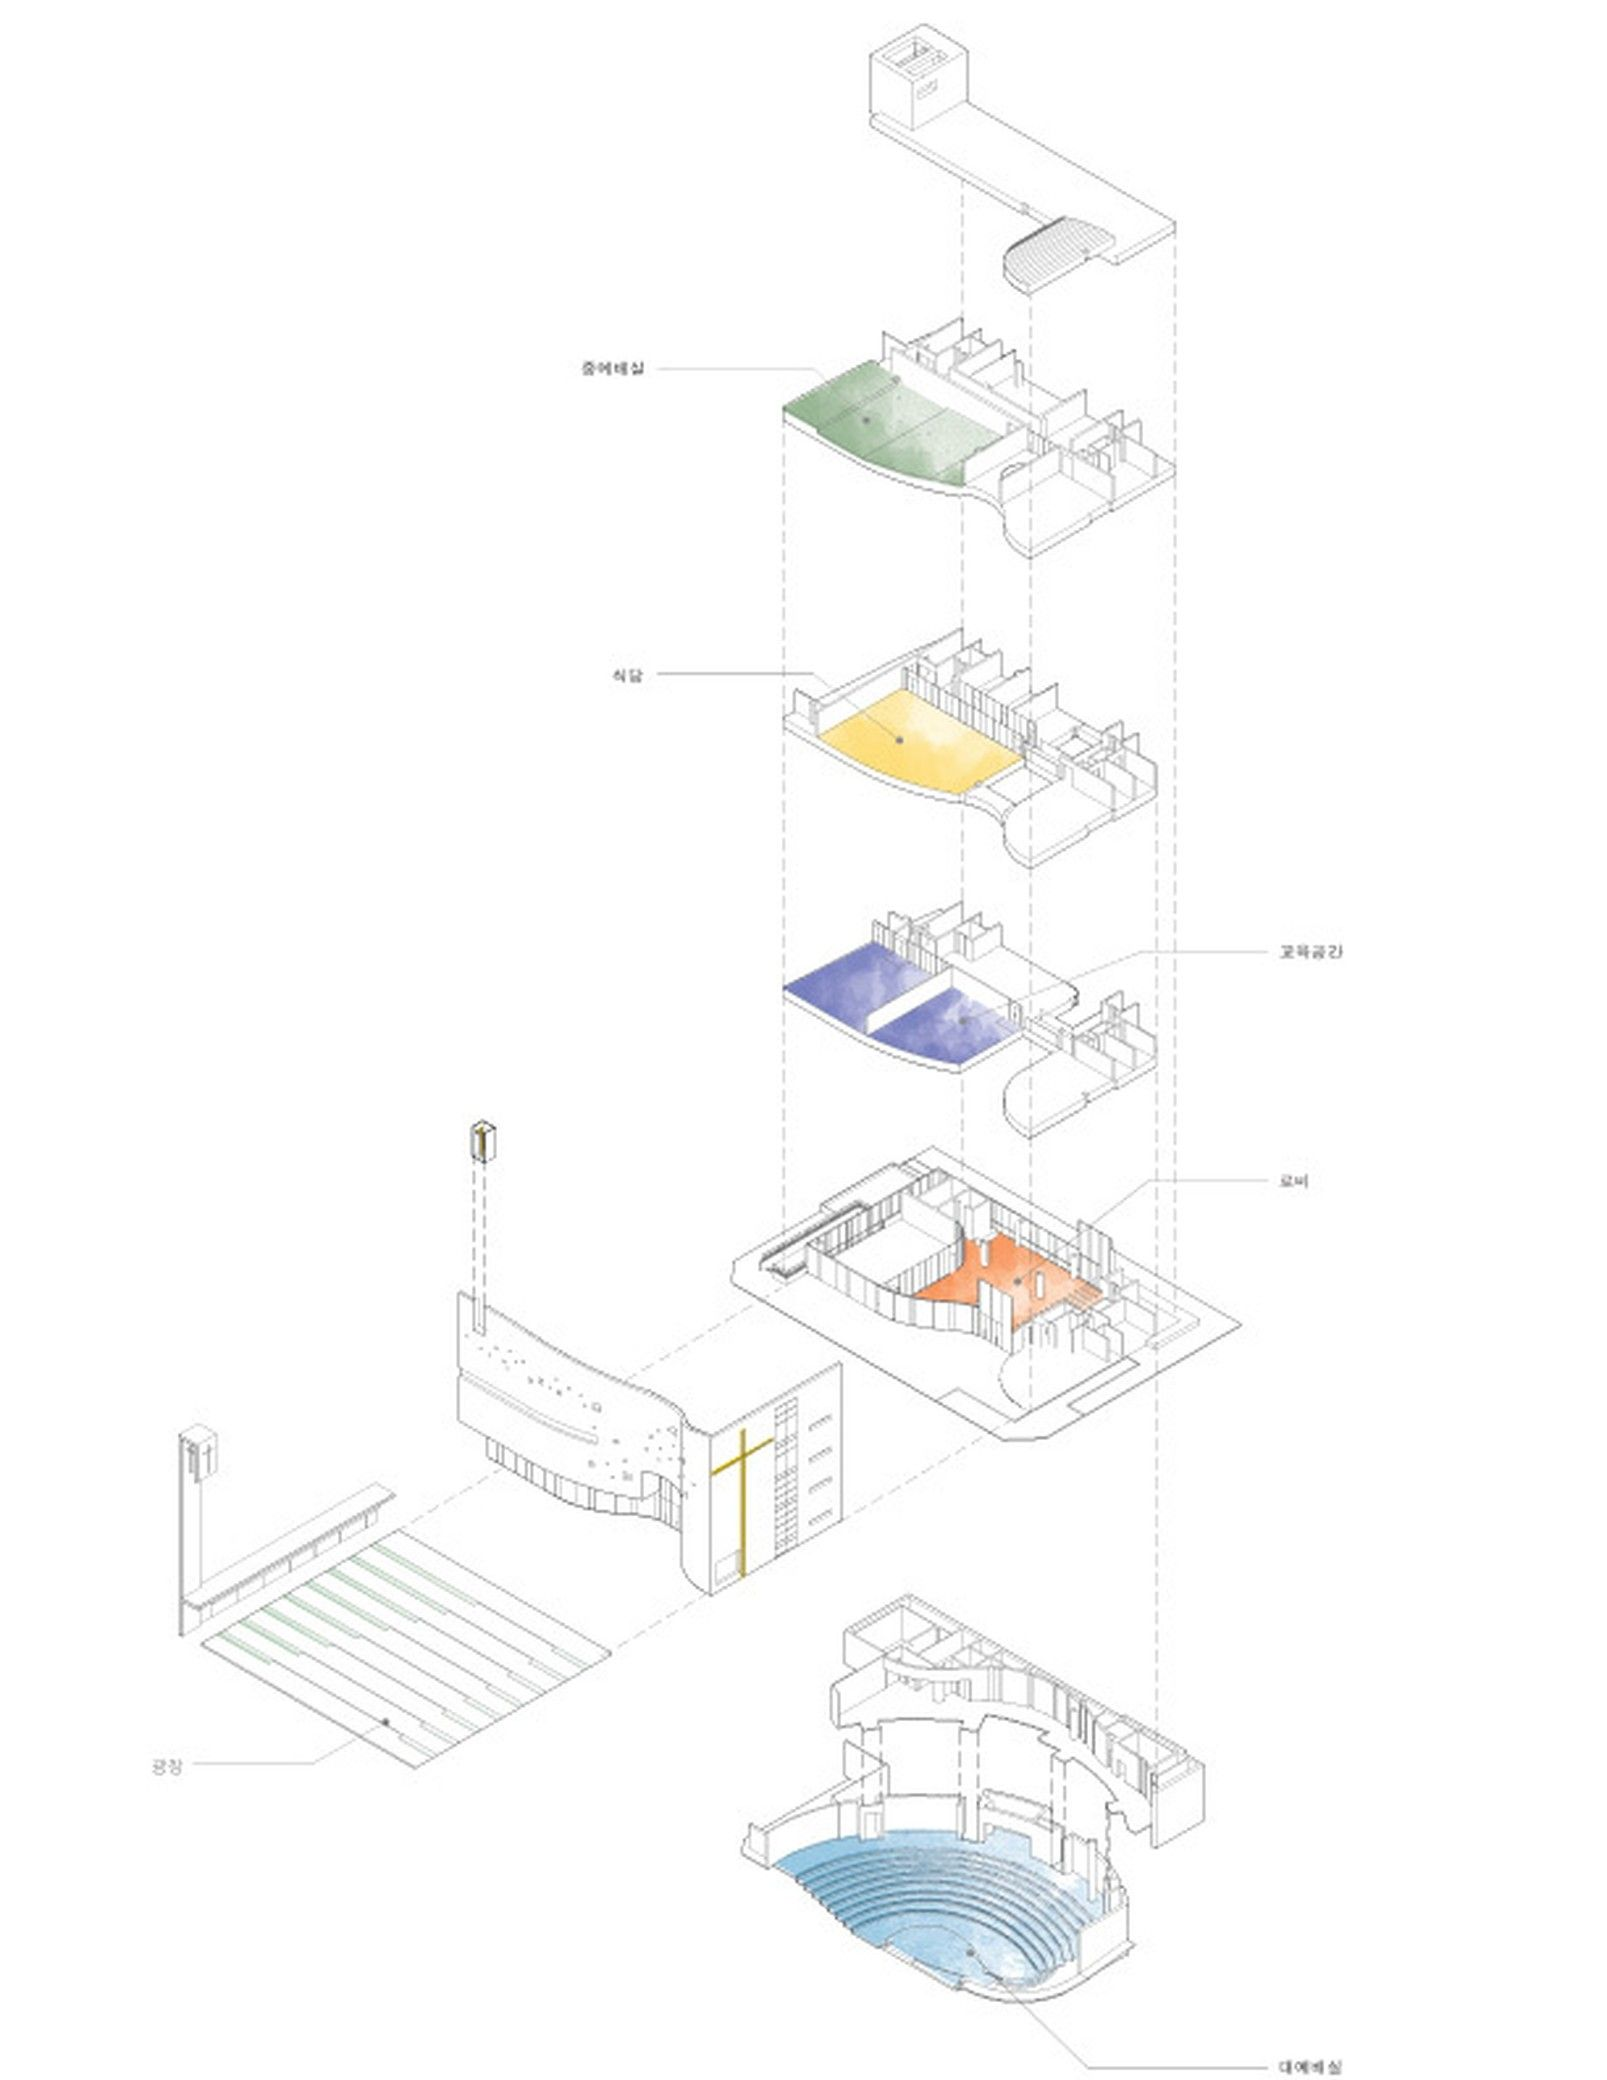 Master Plan Architecture Bubble Diagram Pajero Wiring Architectural 3d Diagrams For Pinterest Daejun Holy New Light Church Drawings